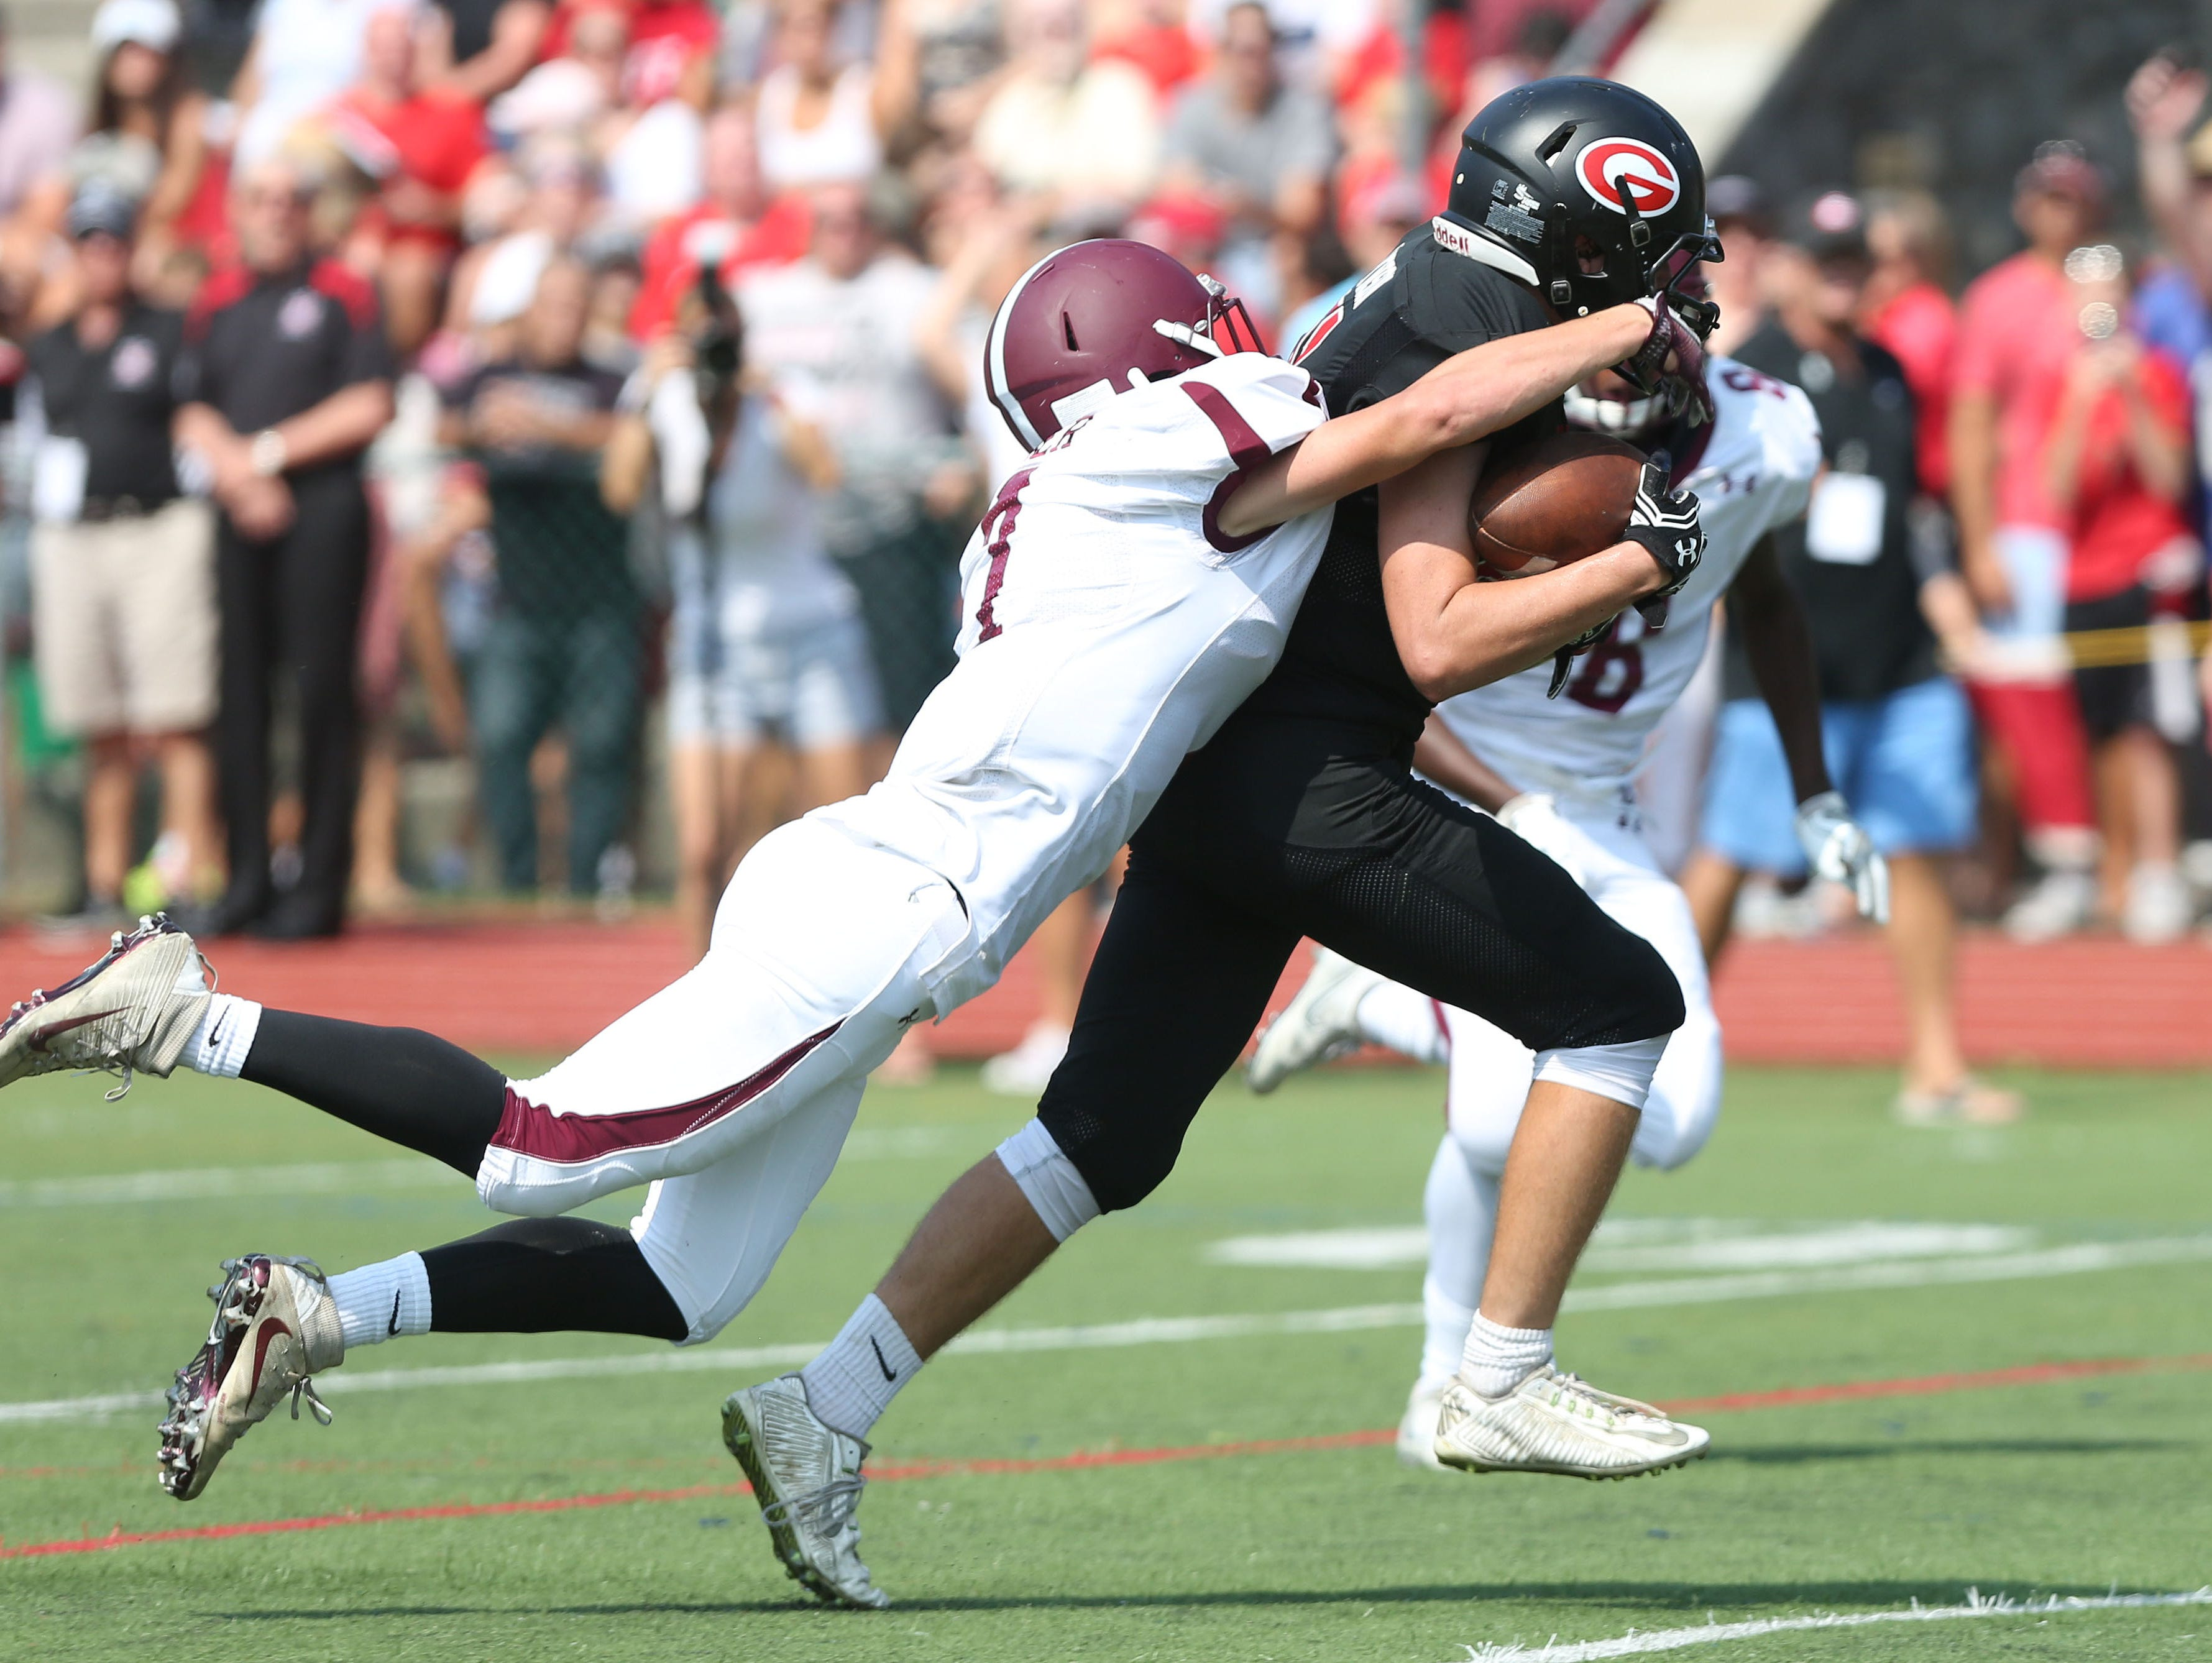 Rye's Will Hynson drags Harrison's Brett Silber into the end zone after catching a pass from T.J. Lavelle during first half of the teams' annual rivalry game at Nugent Stadium at Rye High School on Saturday. Rye won the game 42-12.